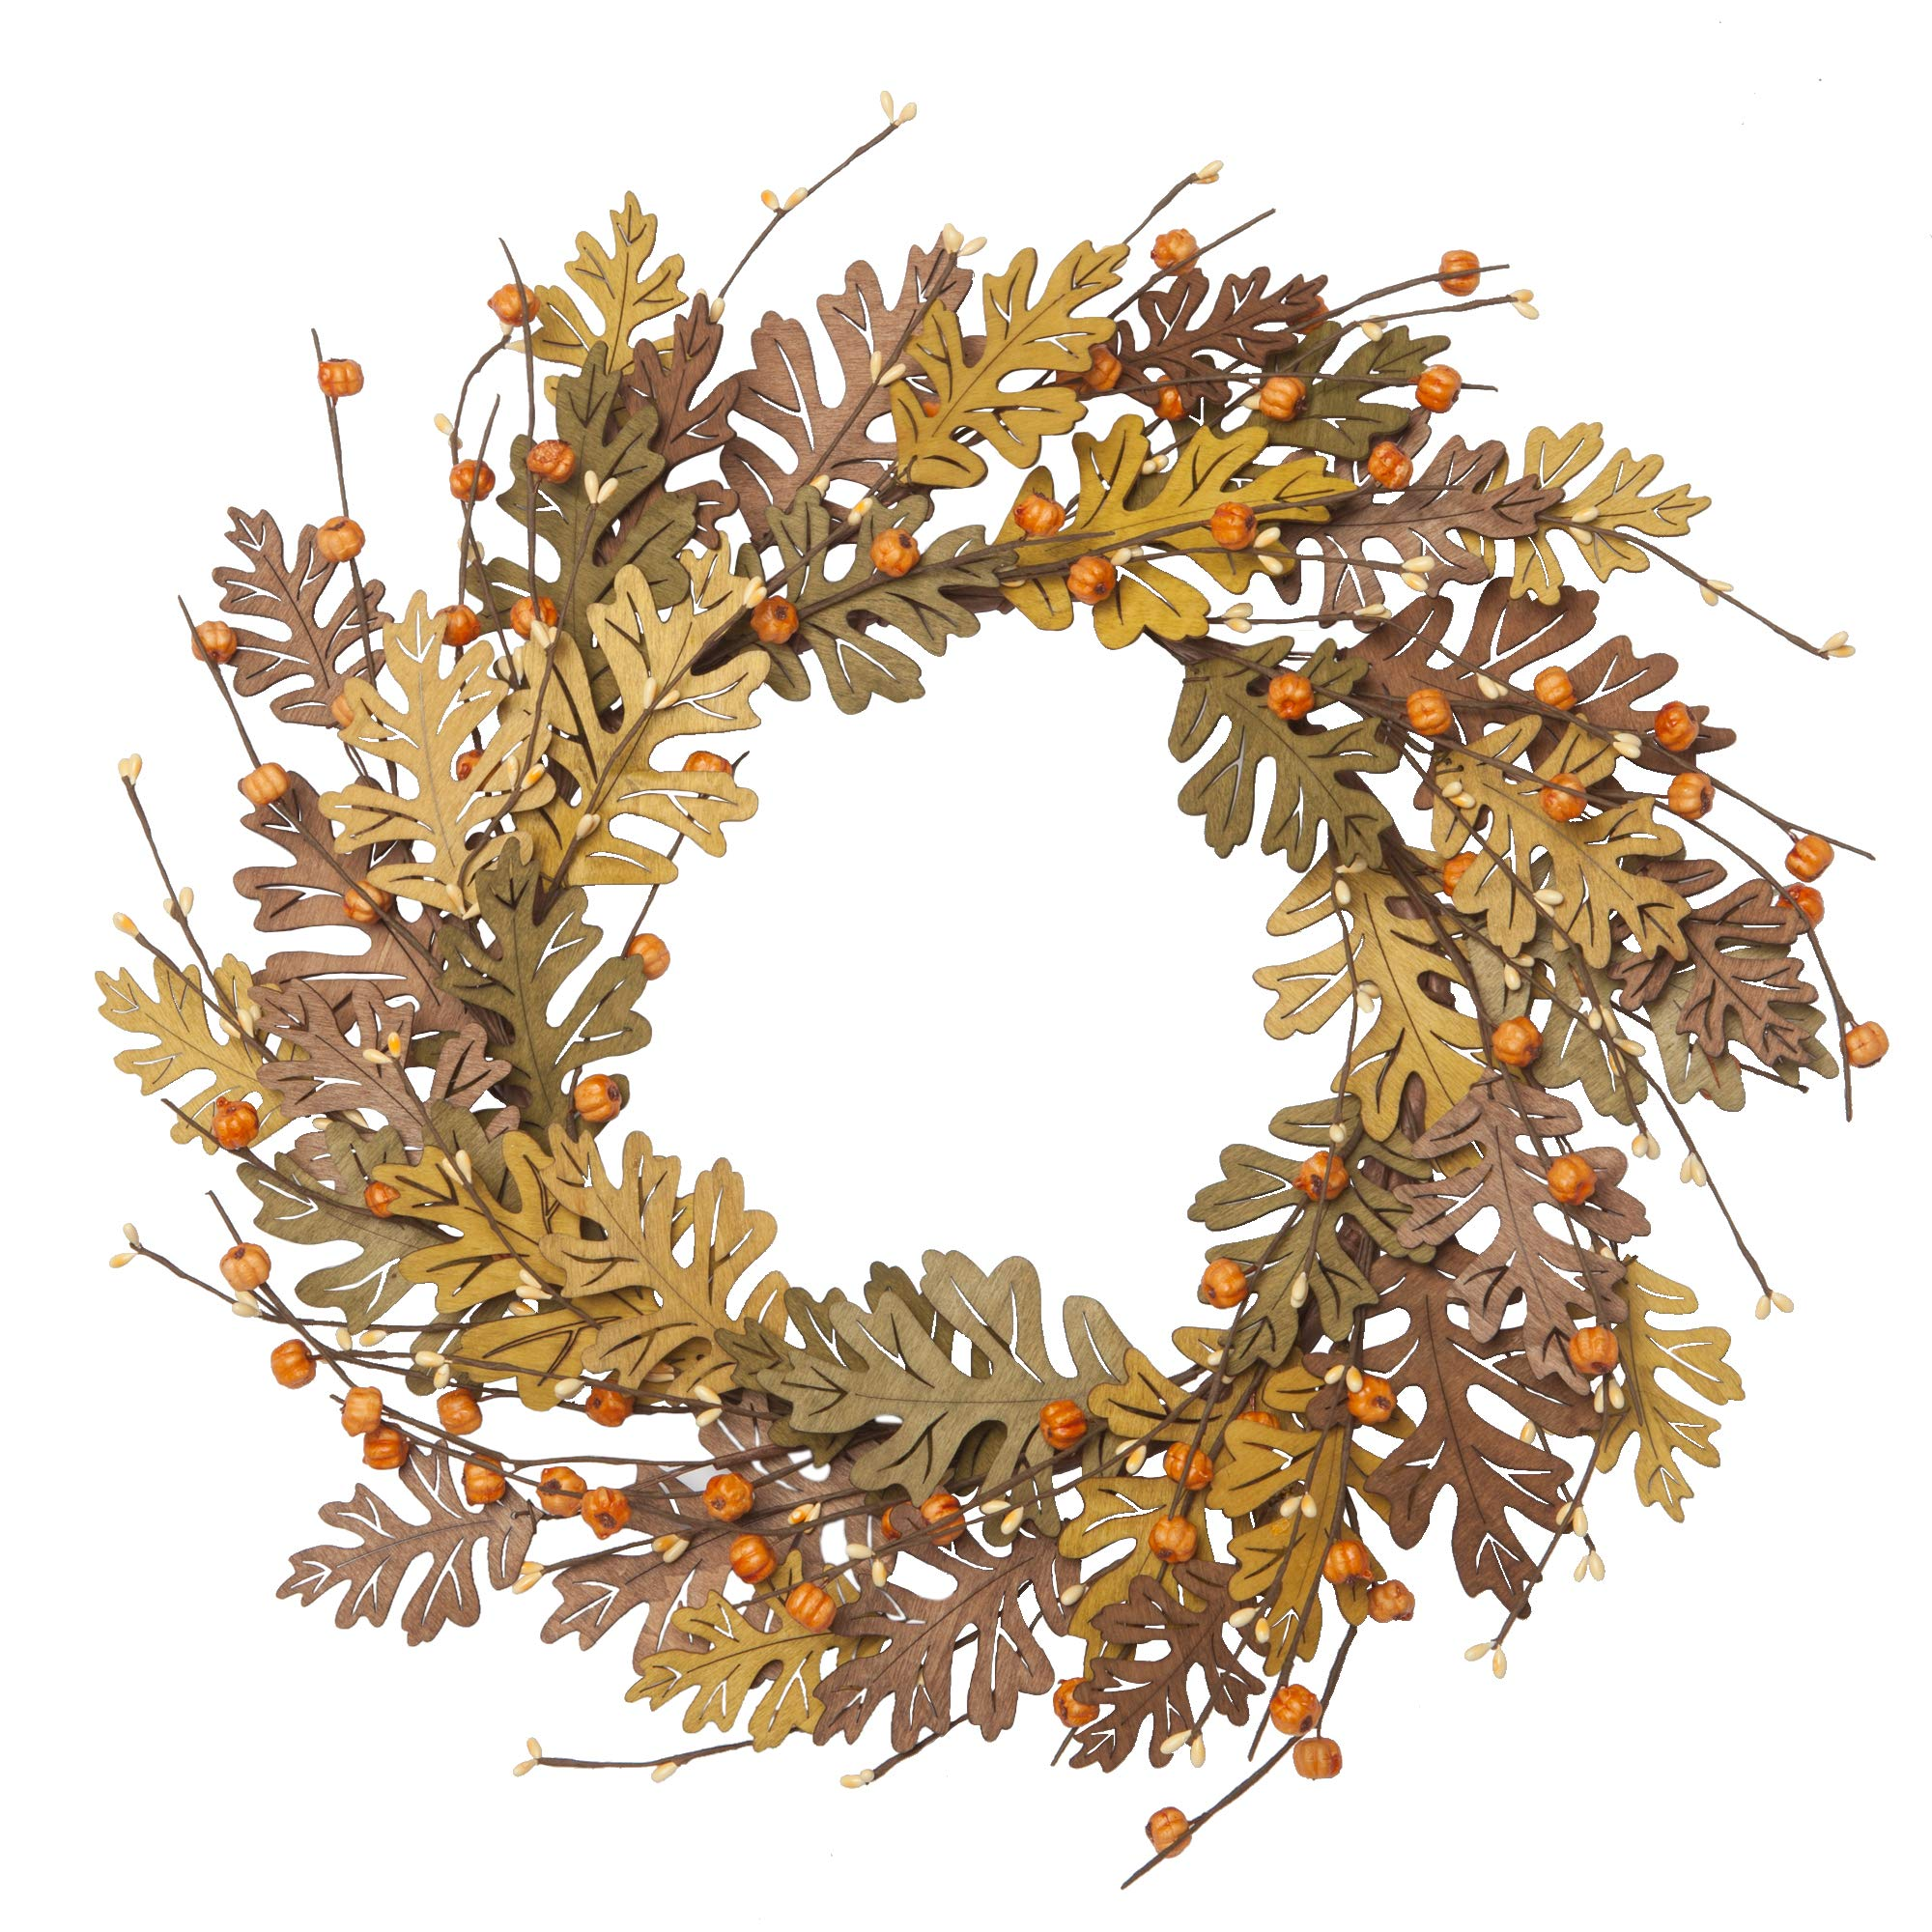 VGIA 18 Inch  Fall Wreath Fall Decorations for Home  Front Door Wooden Autumn Leaves Wreath  Autumn Harvest Wreath by VGIA